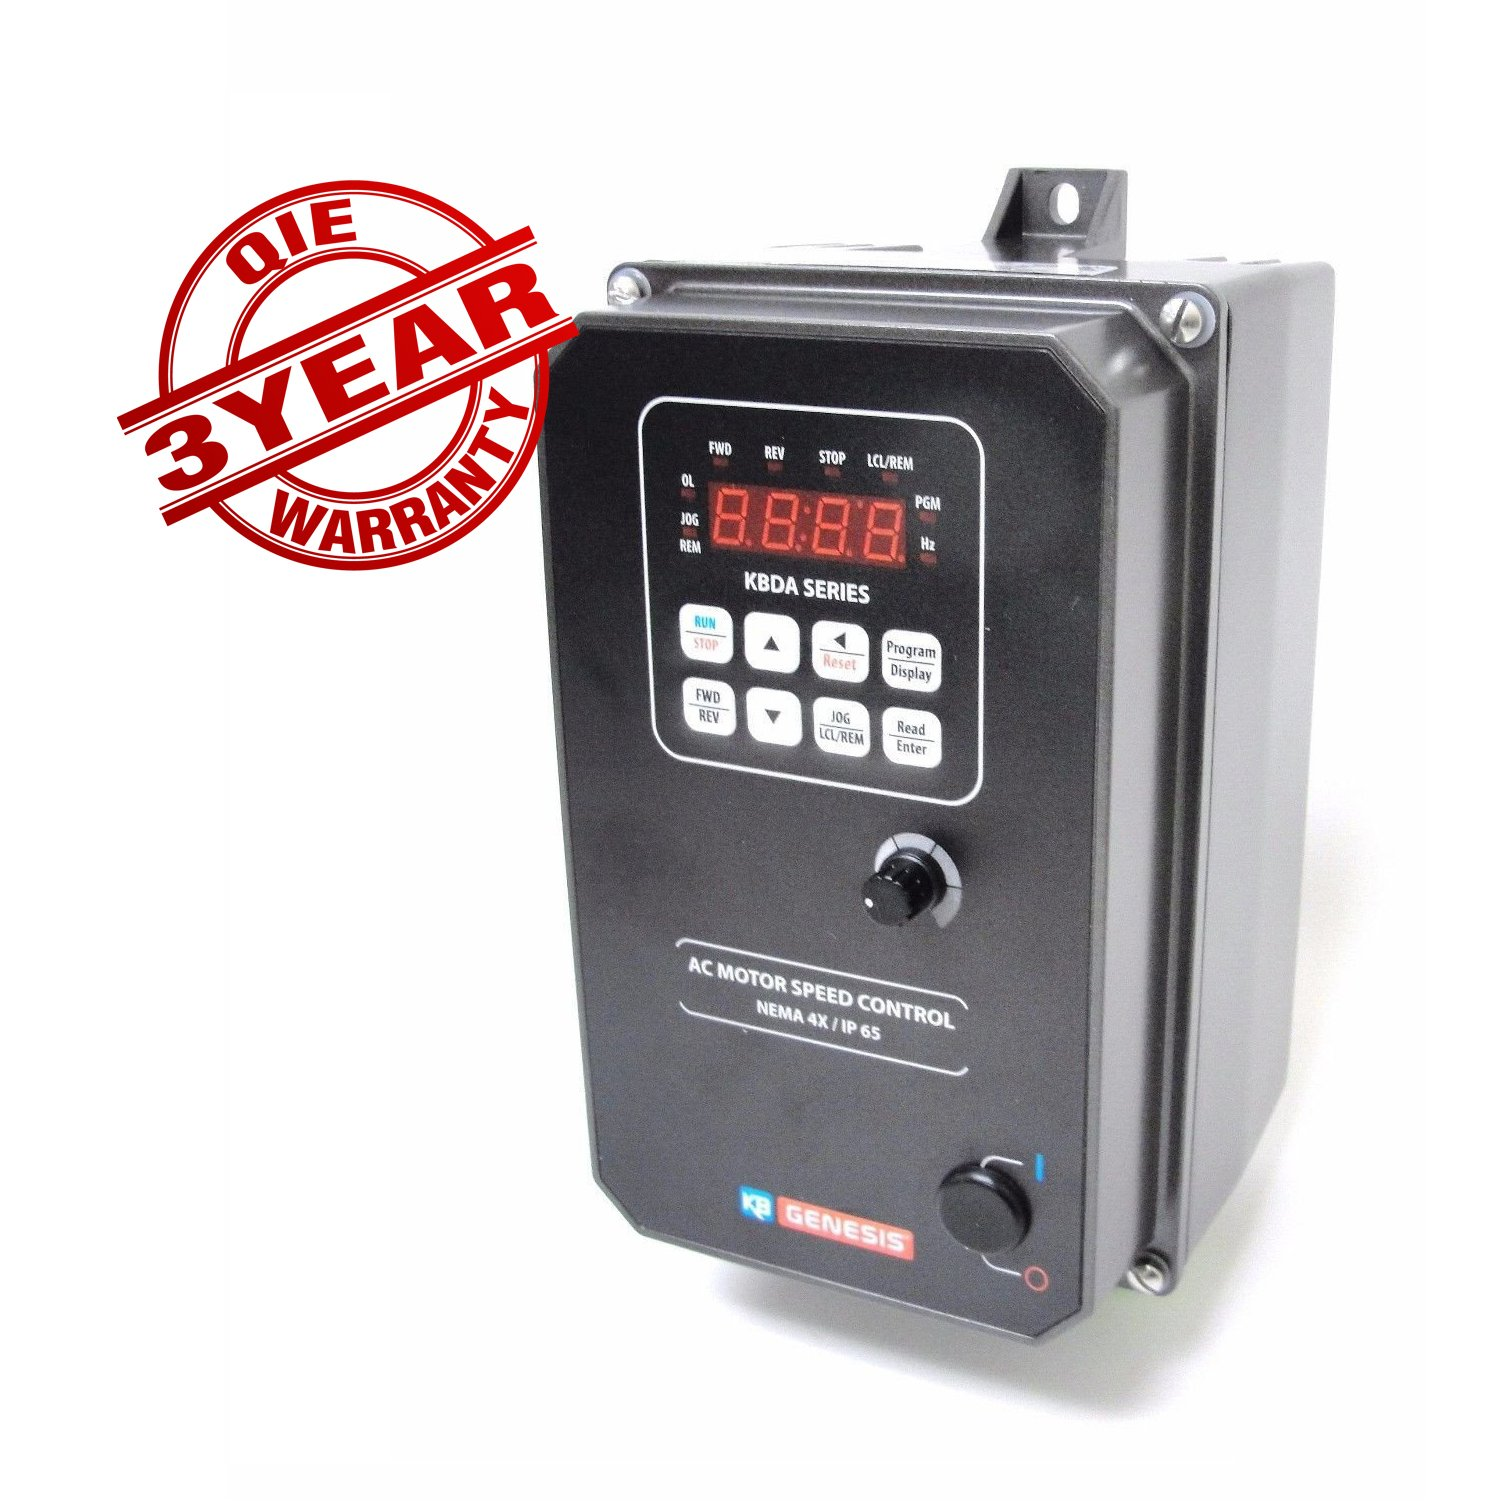 KBDA-24D (9536Q) with QIE Exclusive 3 YEAR Warranty, Digital AC Drive